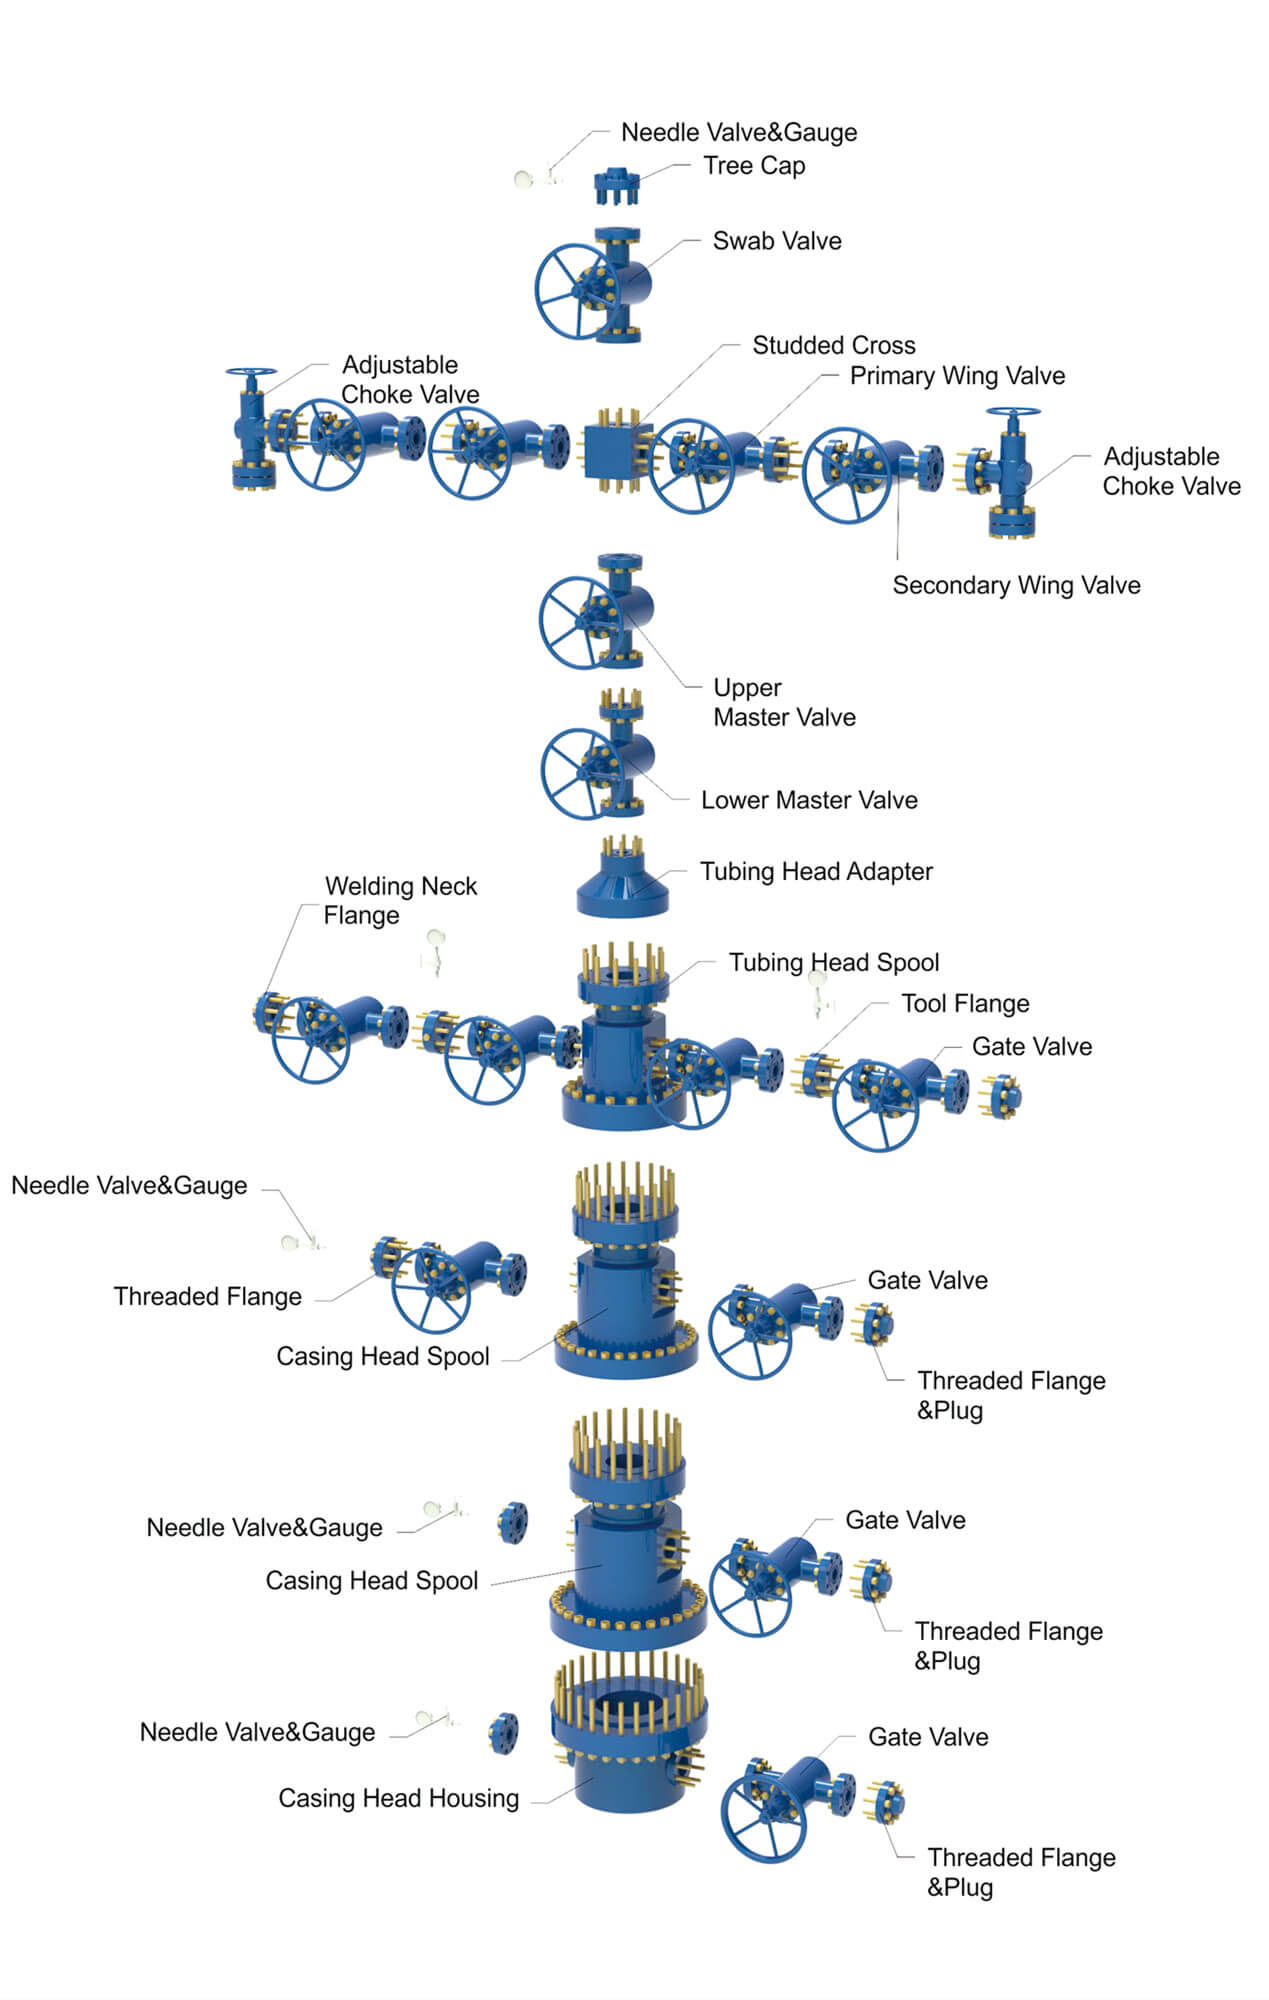 wellhead_X-mas_tree_HC_Petroleum_Equipment_4.jpg